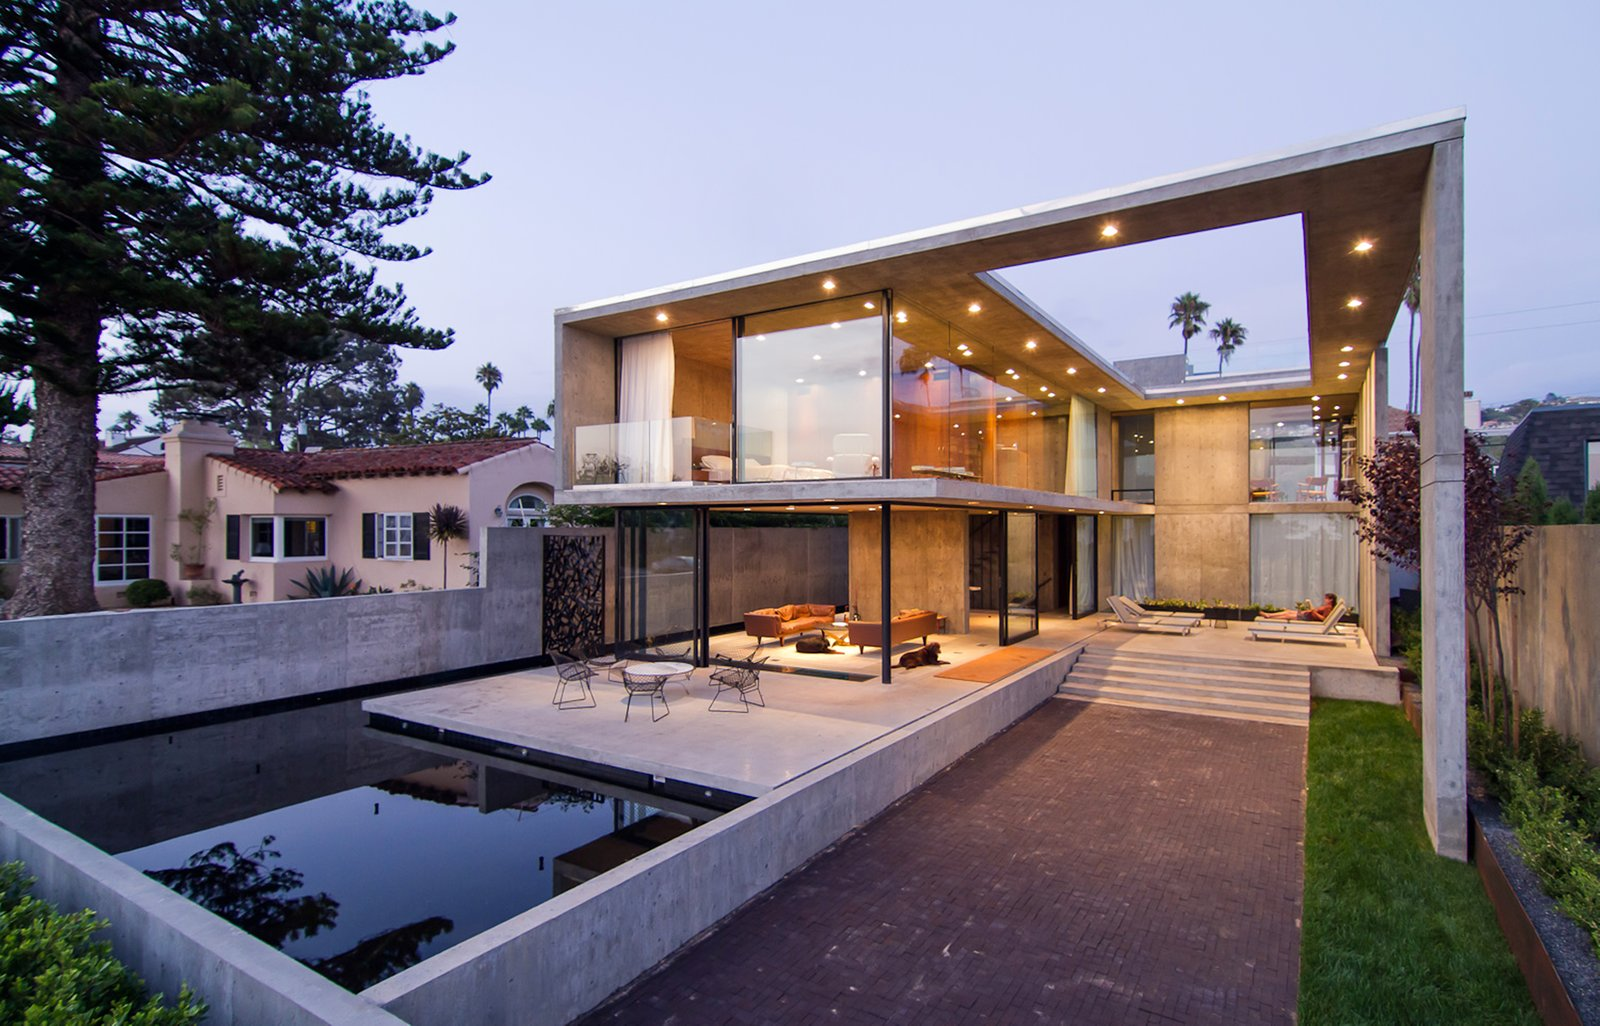 Photo 1 of 8 in This Architect's Home Embraces Oceanfront Views